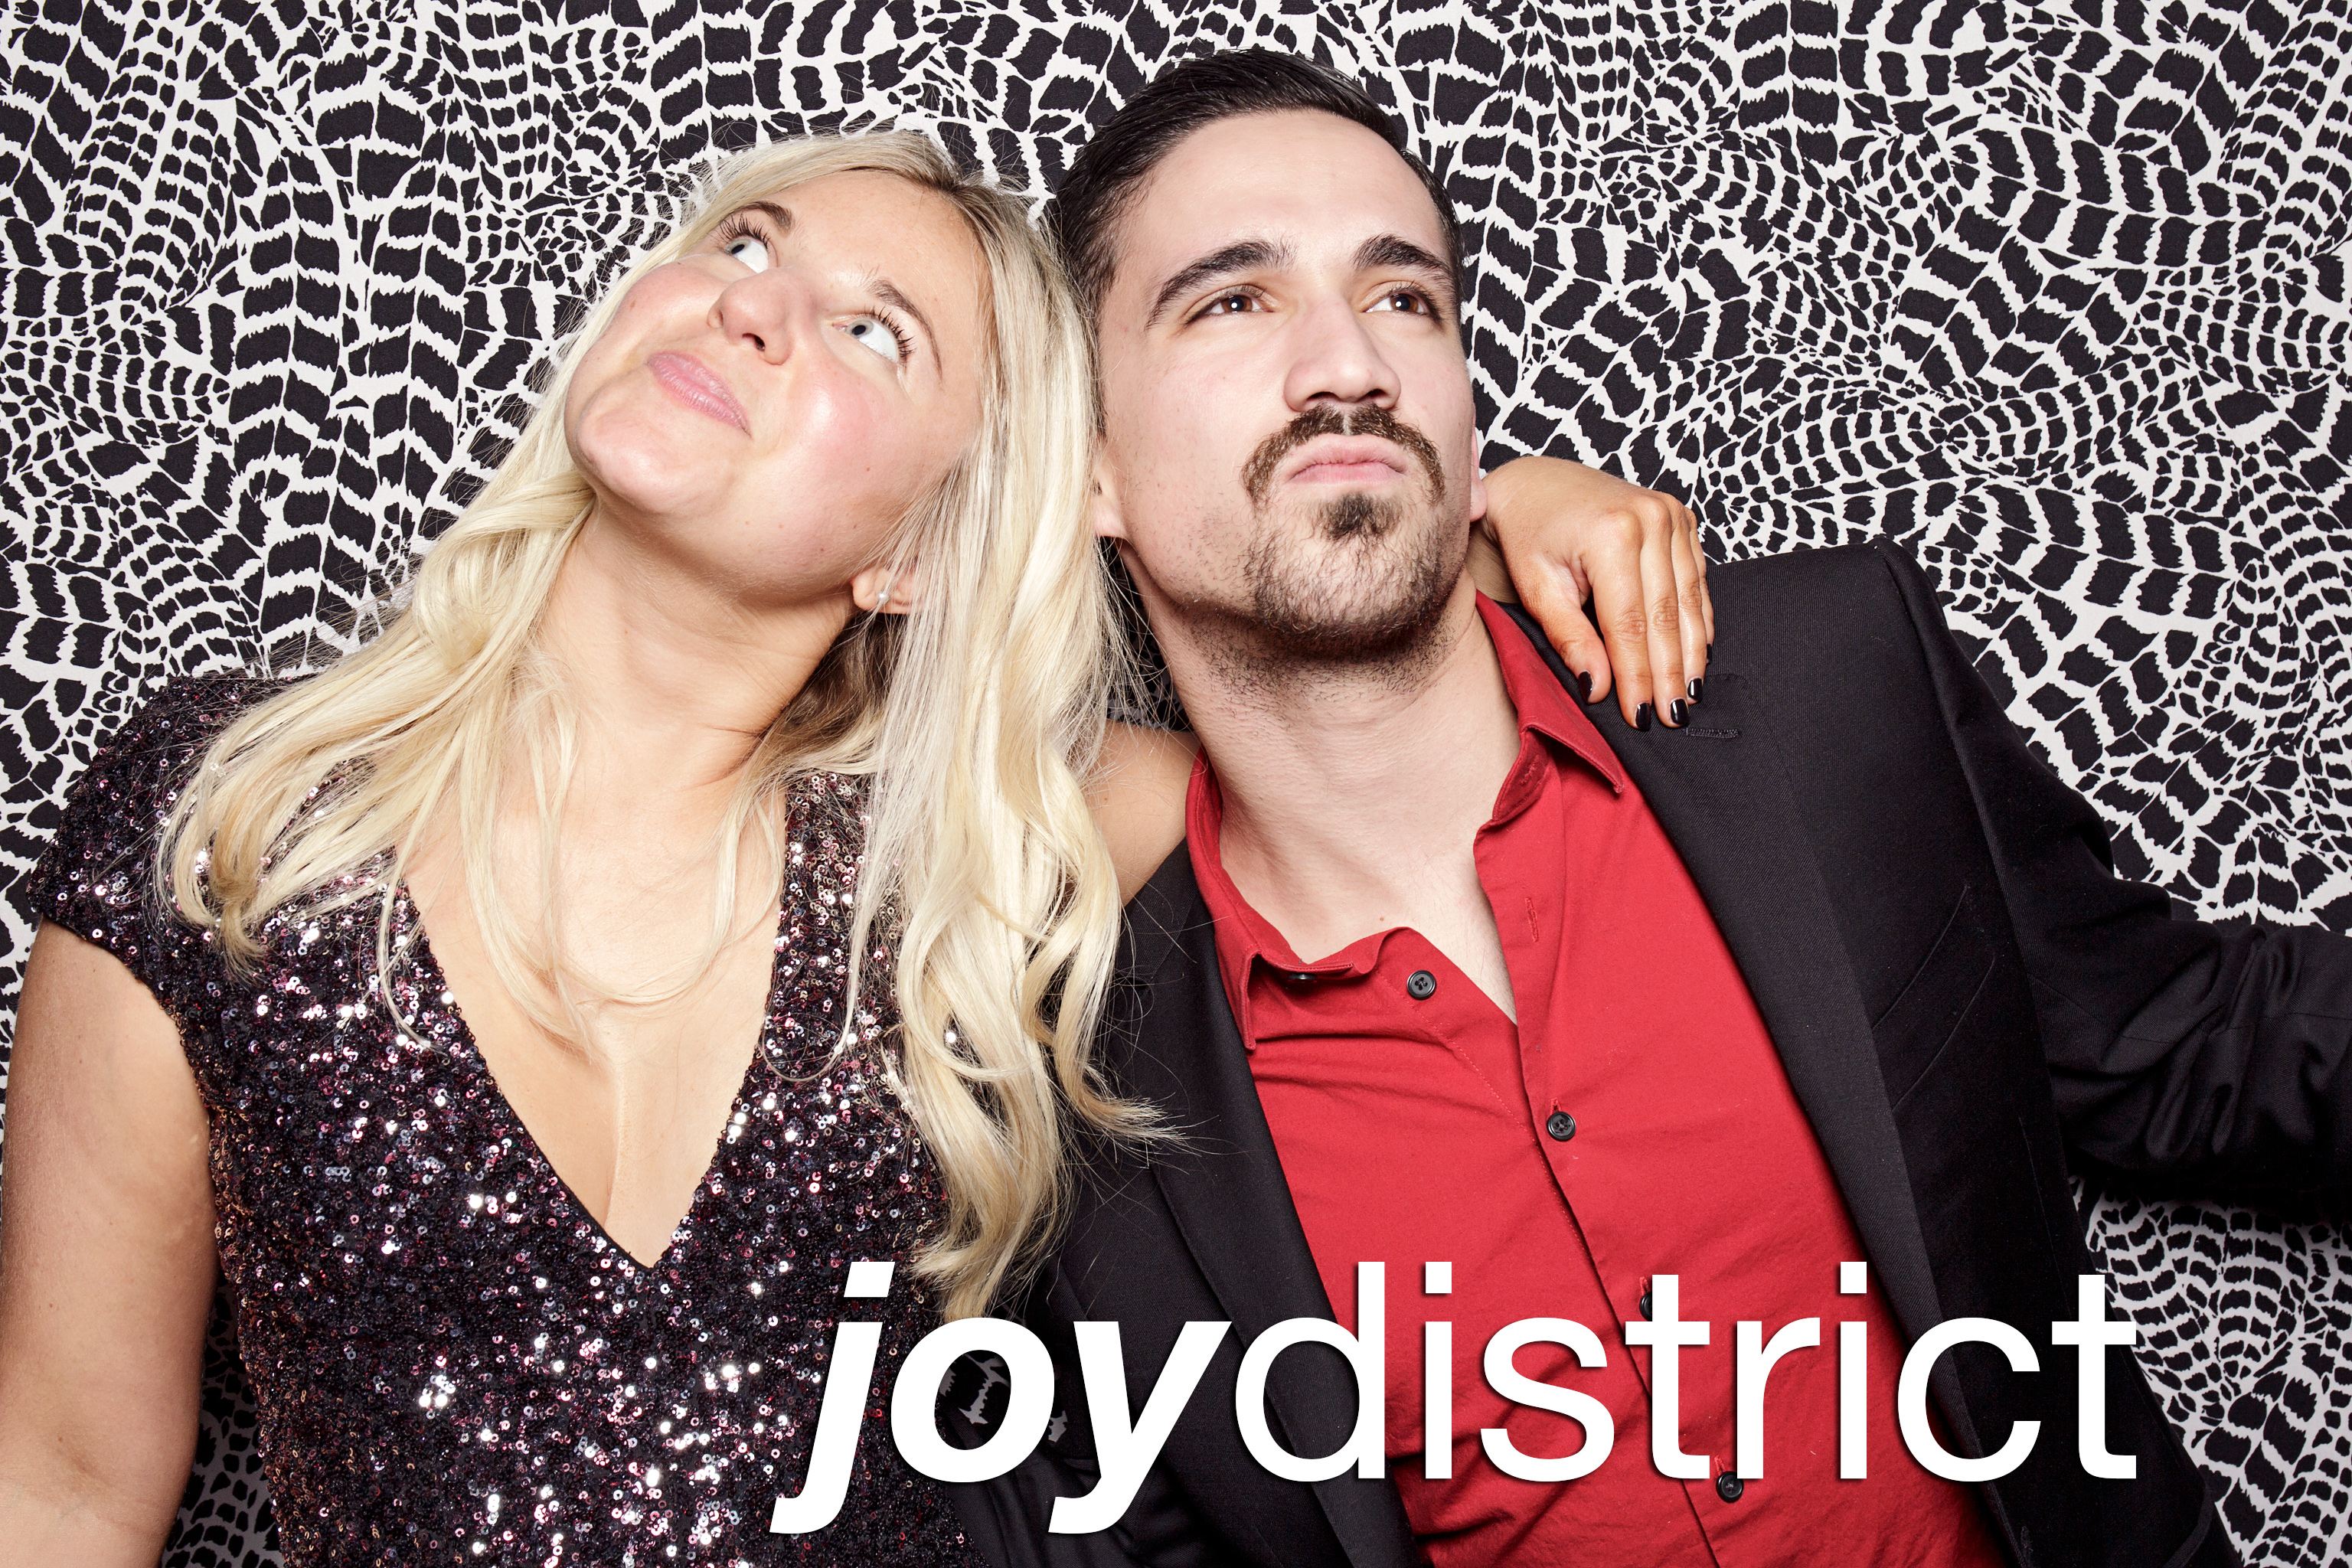 portrait booth photos from joy district, january 2018